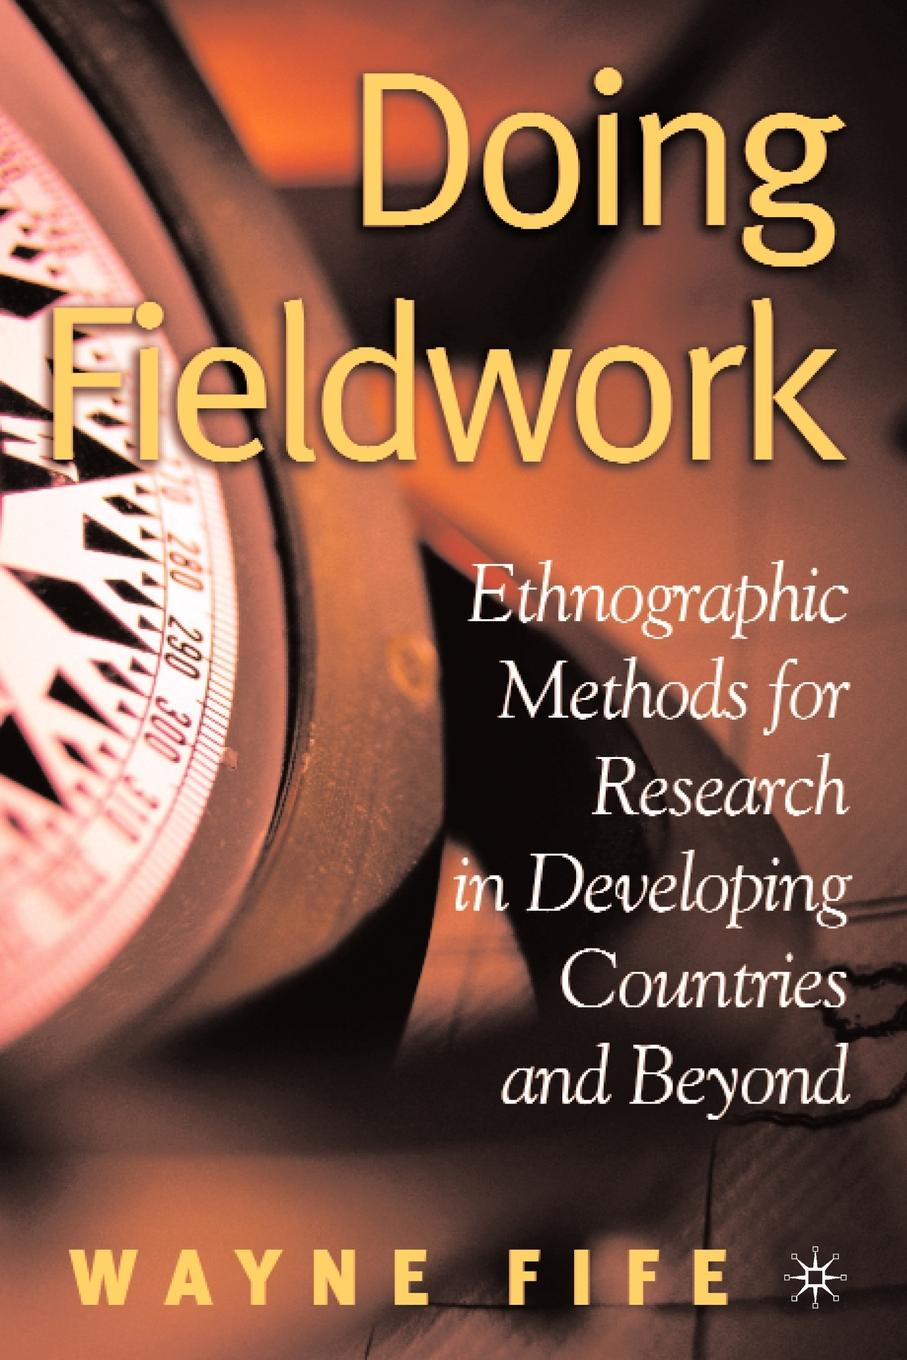 Wayne Fife Doing Fieldwork. Ethnographic Methods for Research in Developing Countries and Beyond optimal health strategy in poorest developing countries